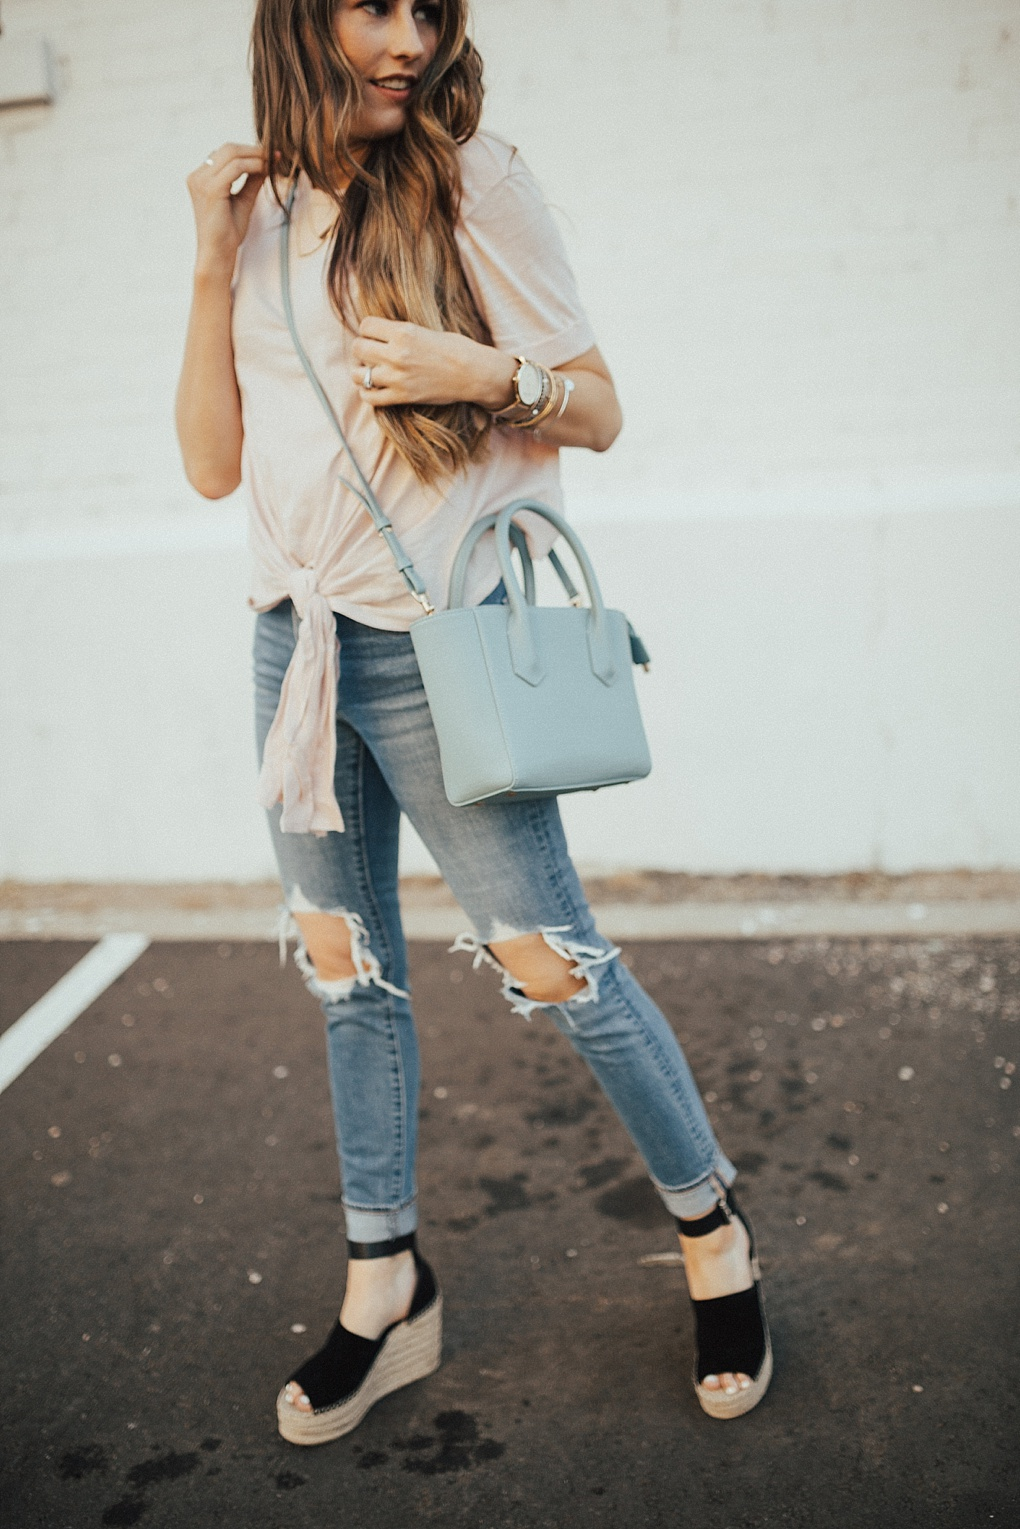 The Must Have Tie Tee Shirt To Transition To Fall by Utah fashion blogger Dani Marie.